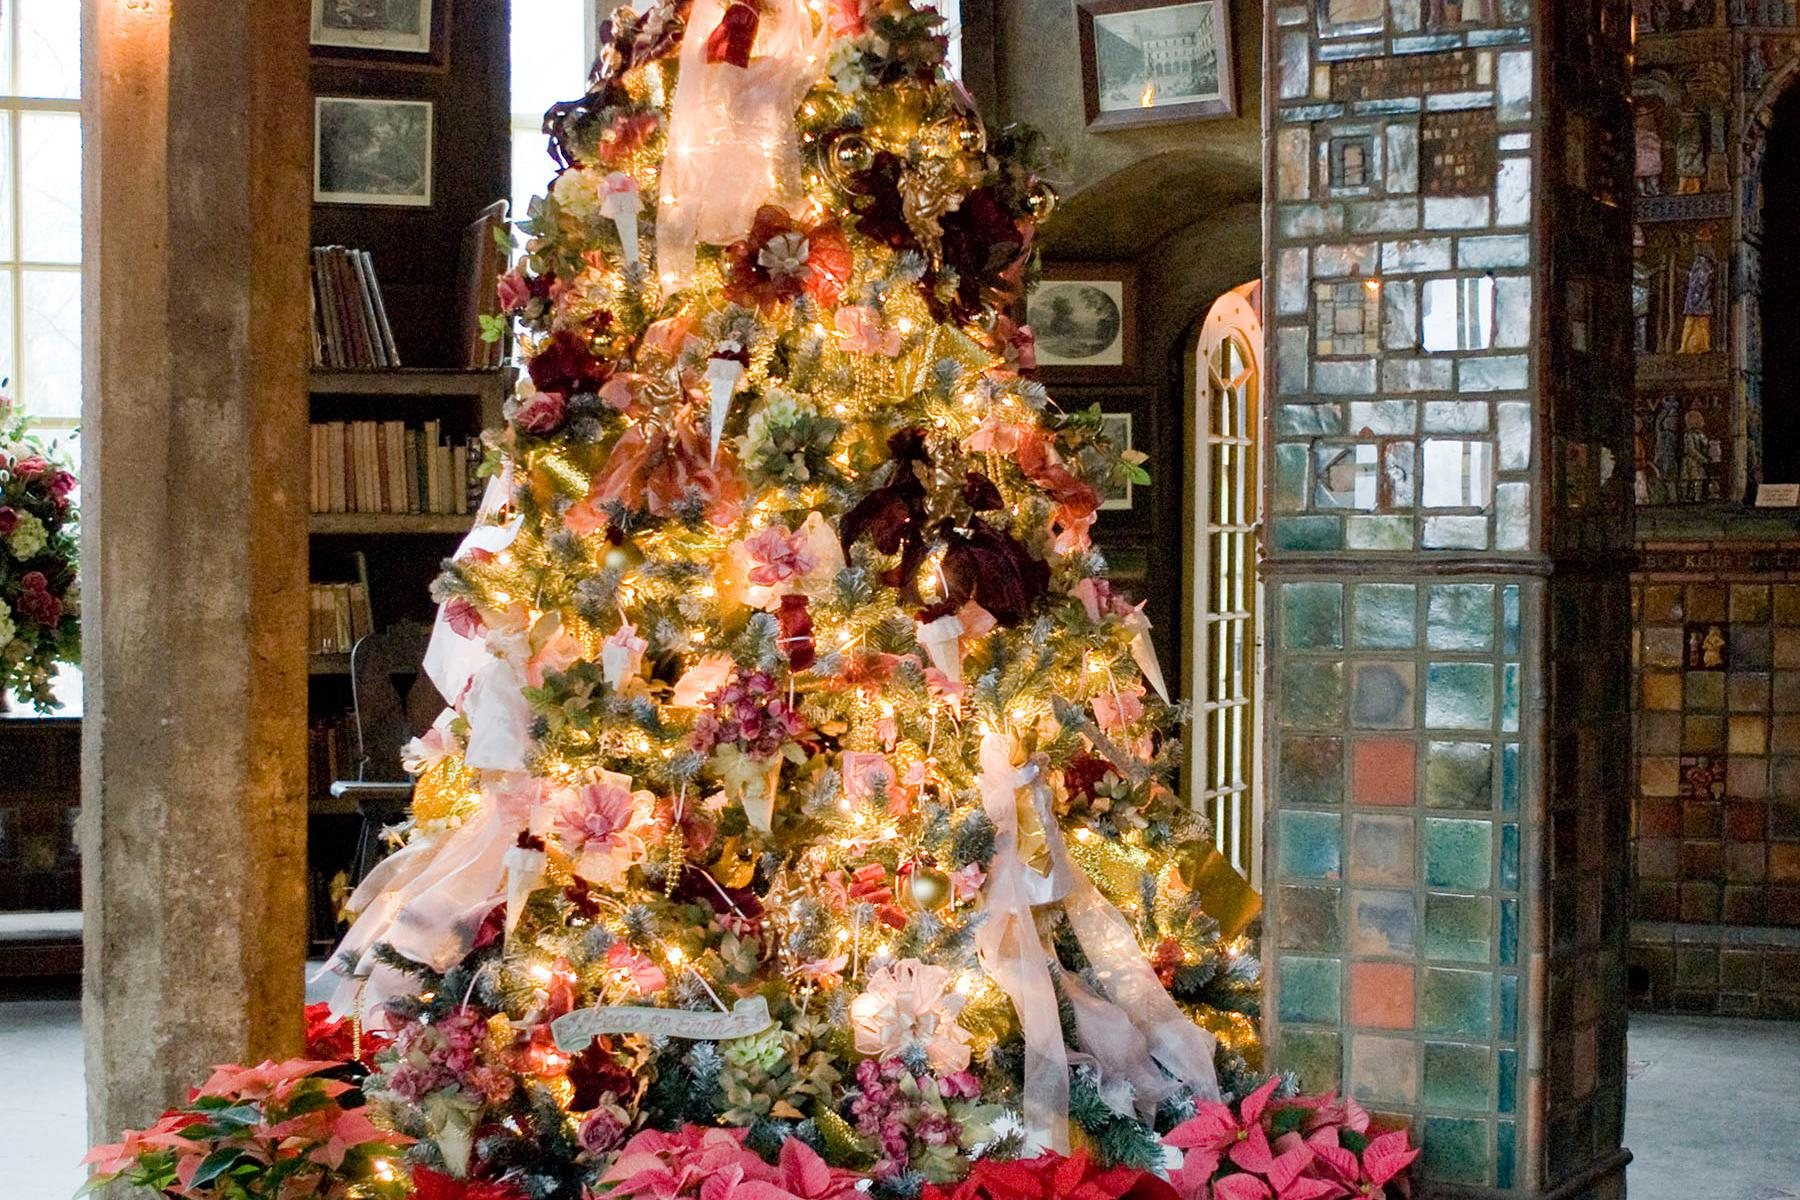 See Fonthill Castle decked out for the holidays during their Holiday Lights Meander or Candlelight Holiday Tours events every December.